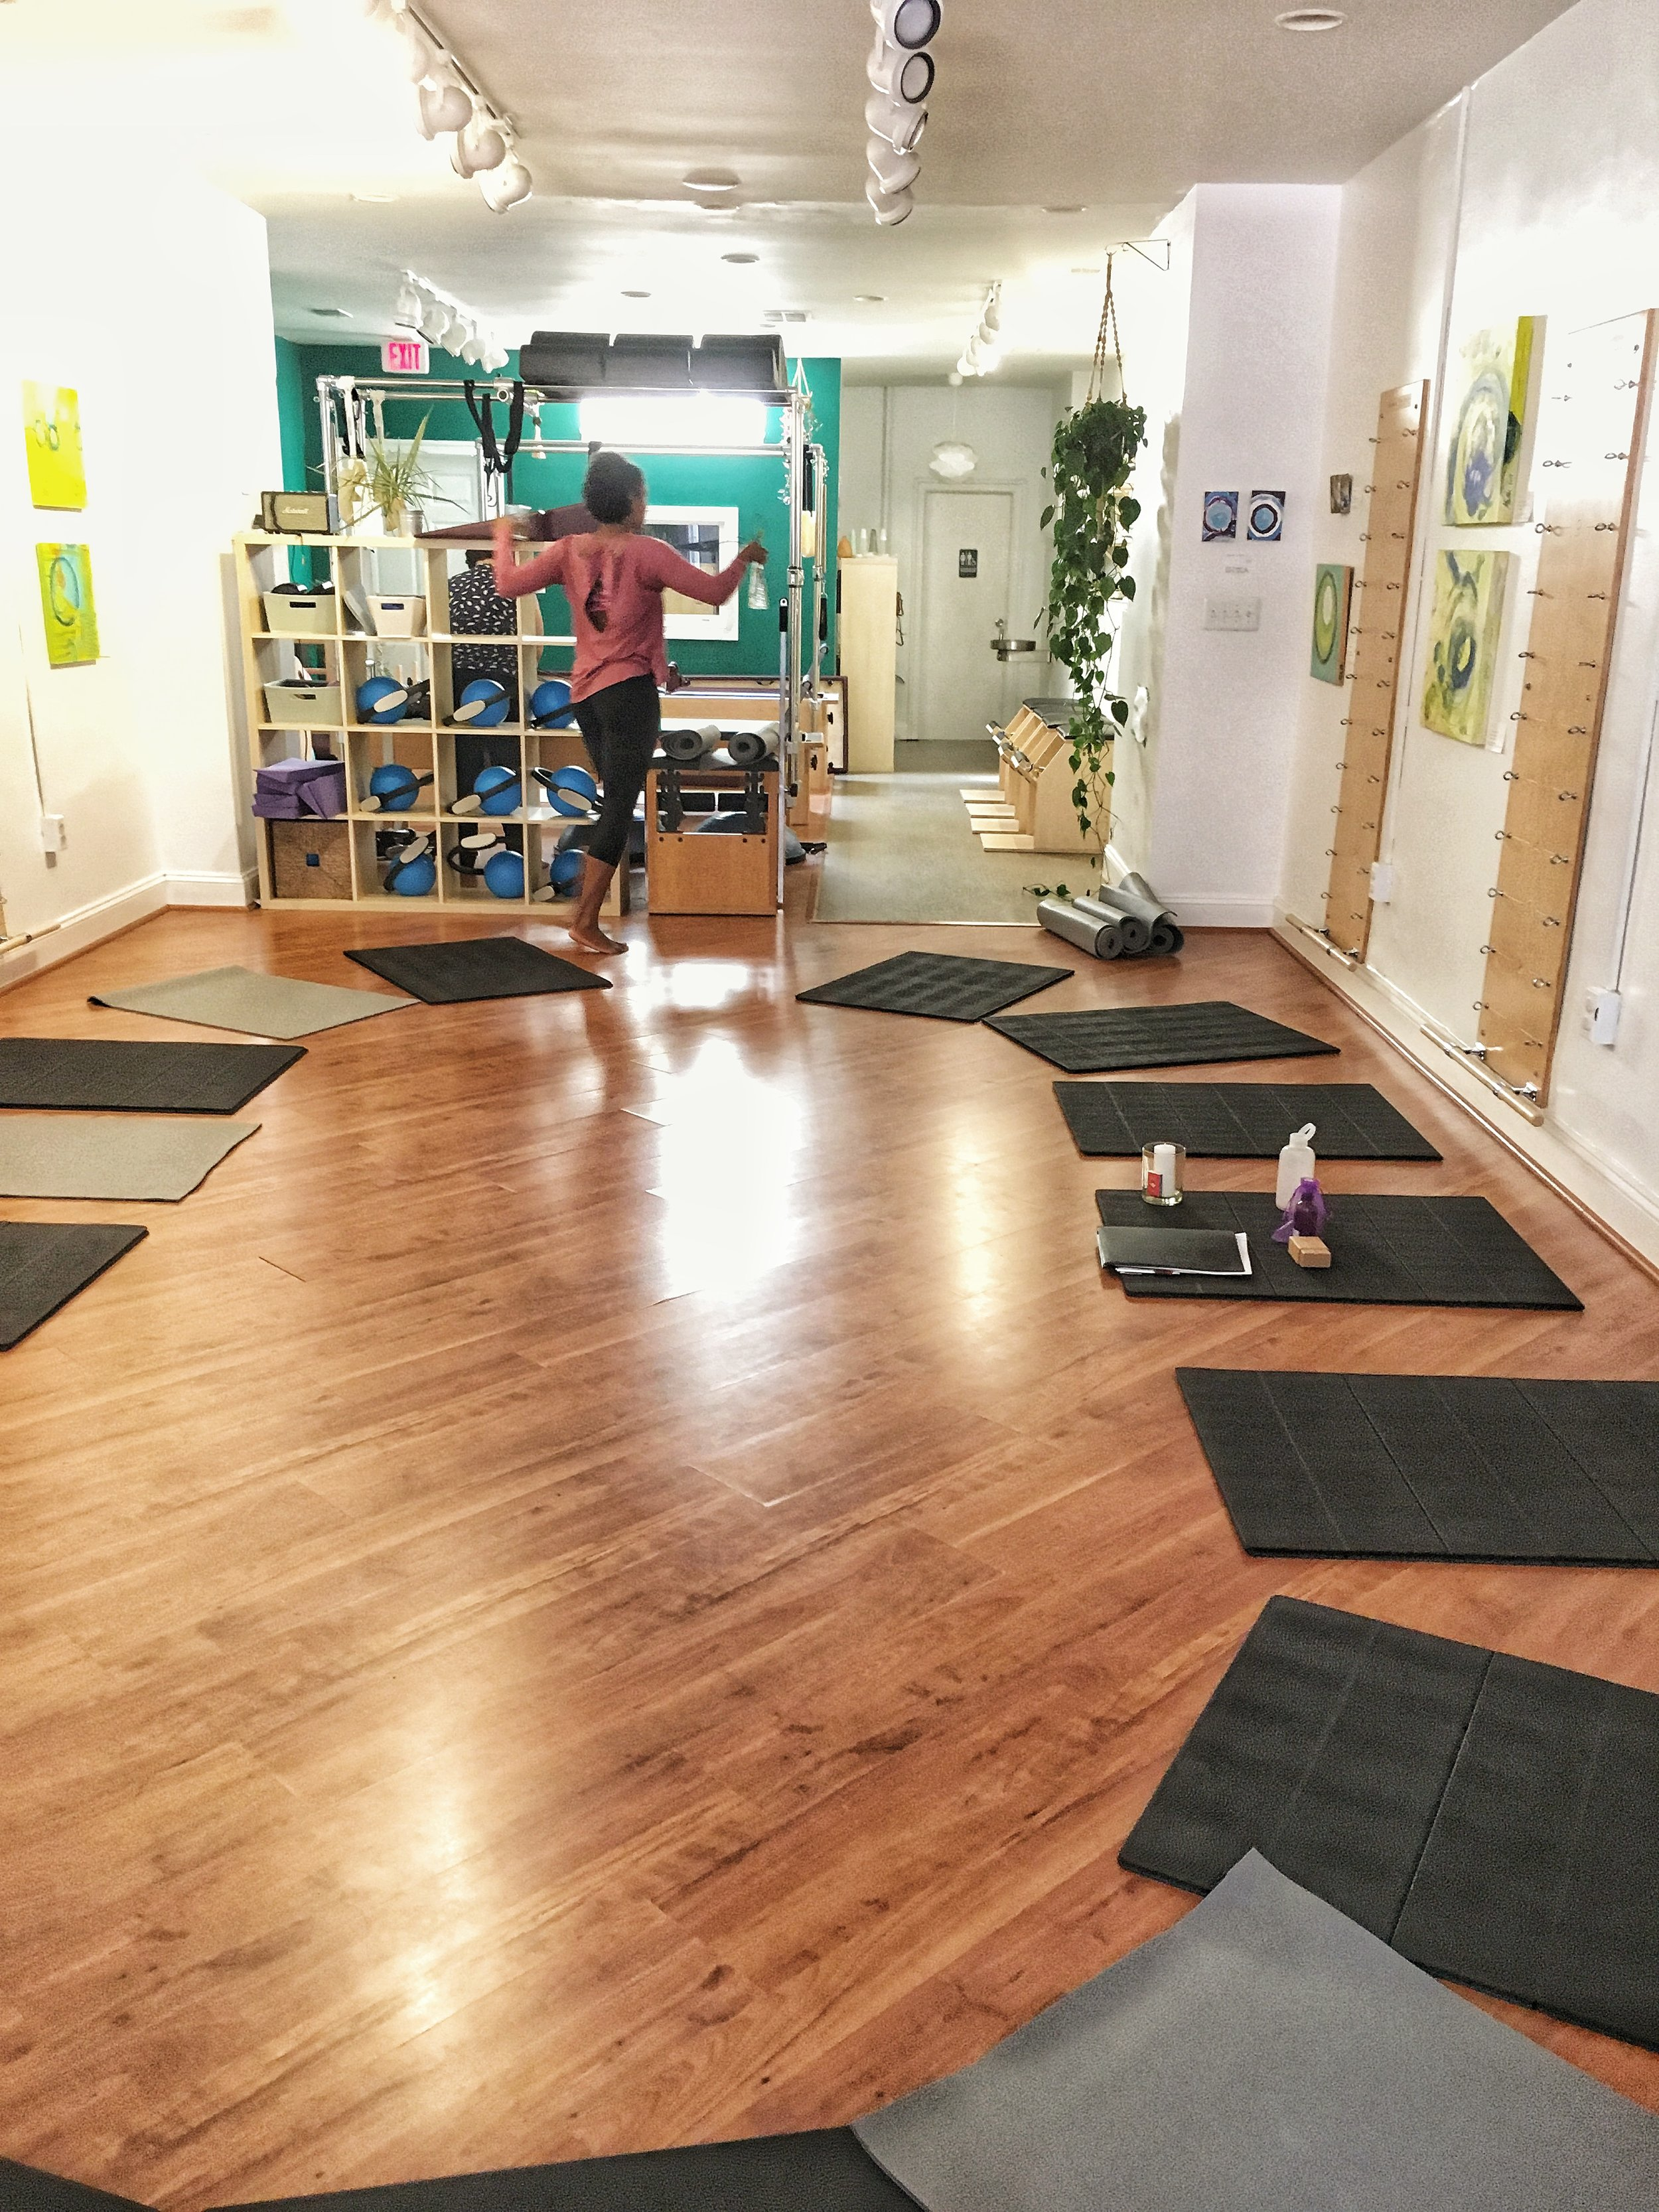 The Connect With Your Core Workshop was held at  Rooted Pilates , a studio located in southeast Washington, DC